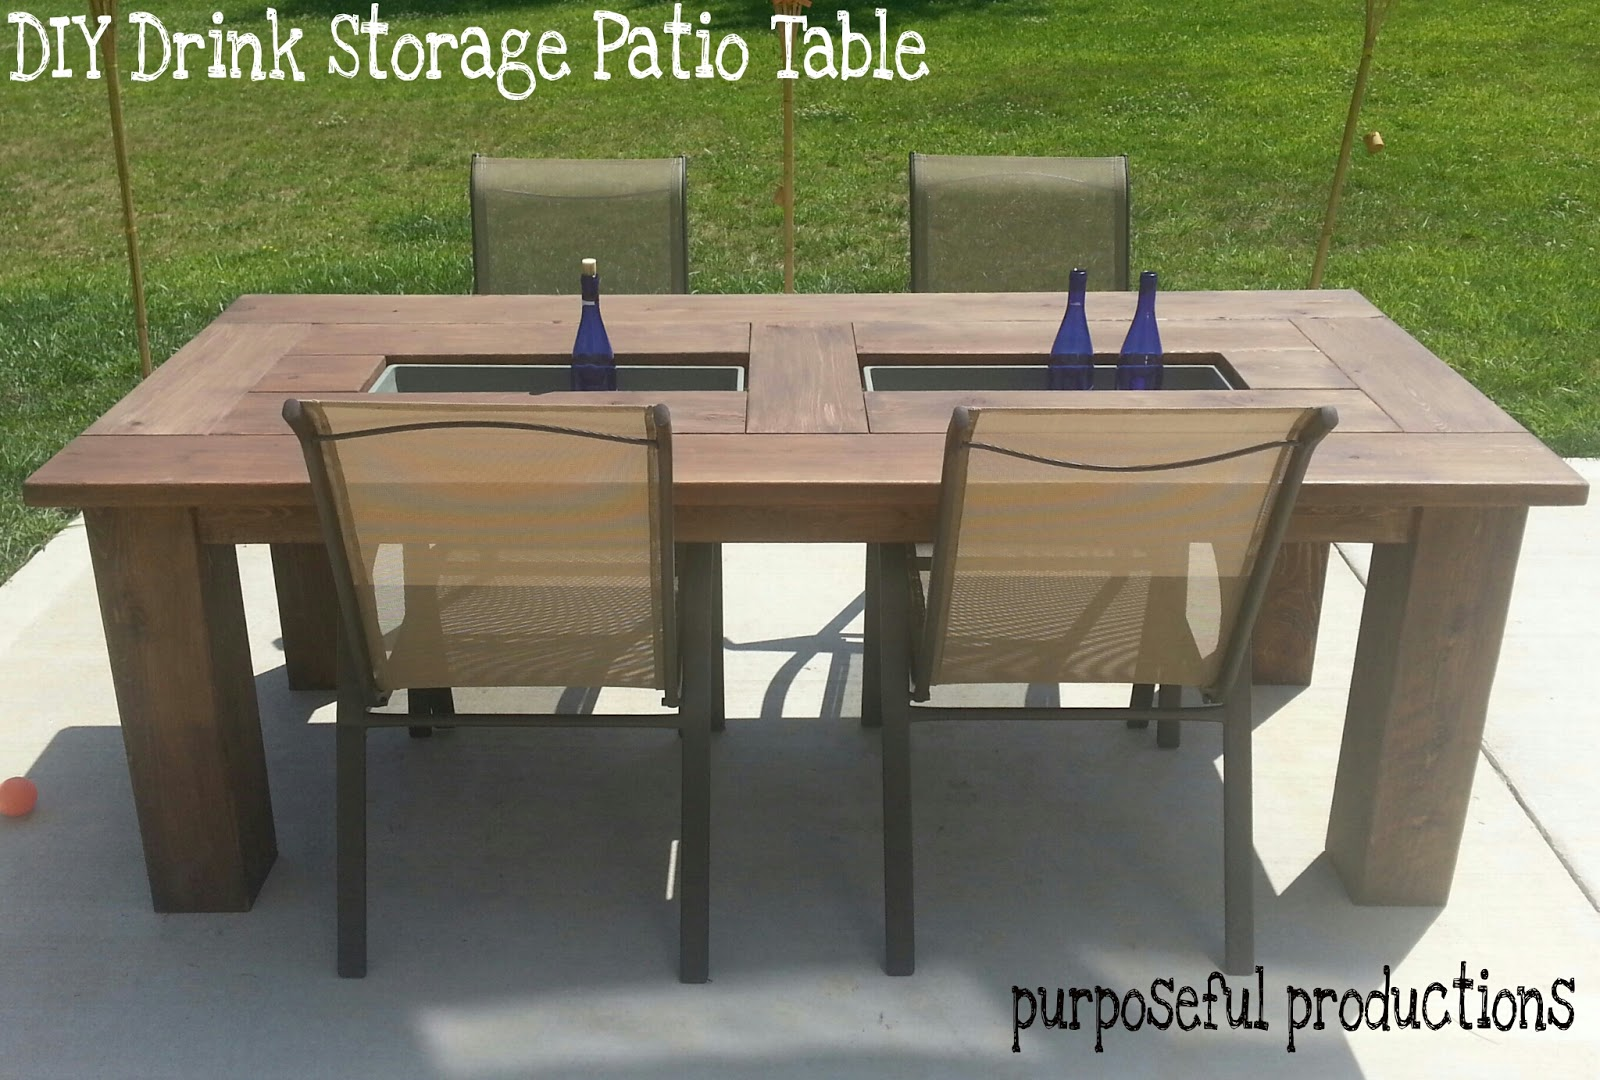 Diy Patio Table And Chairs Purposeful Productions Diy Wood Patio Table With Drink